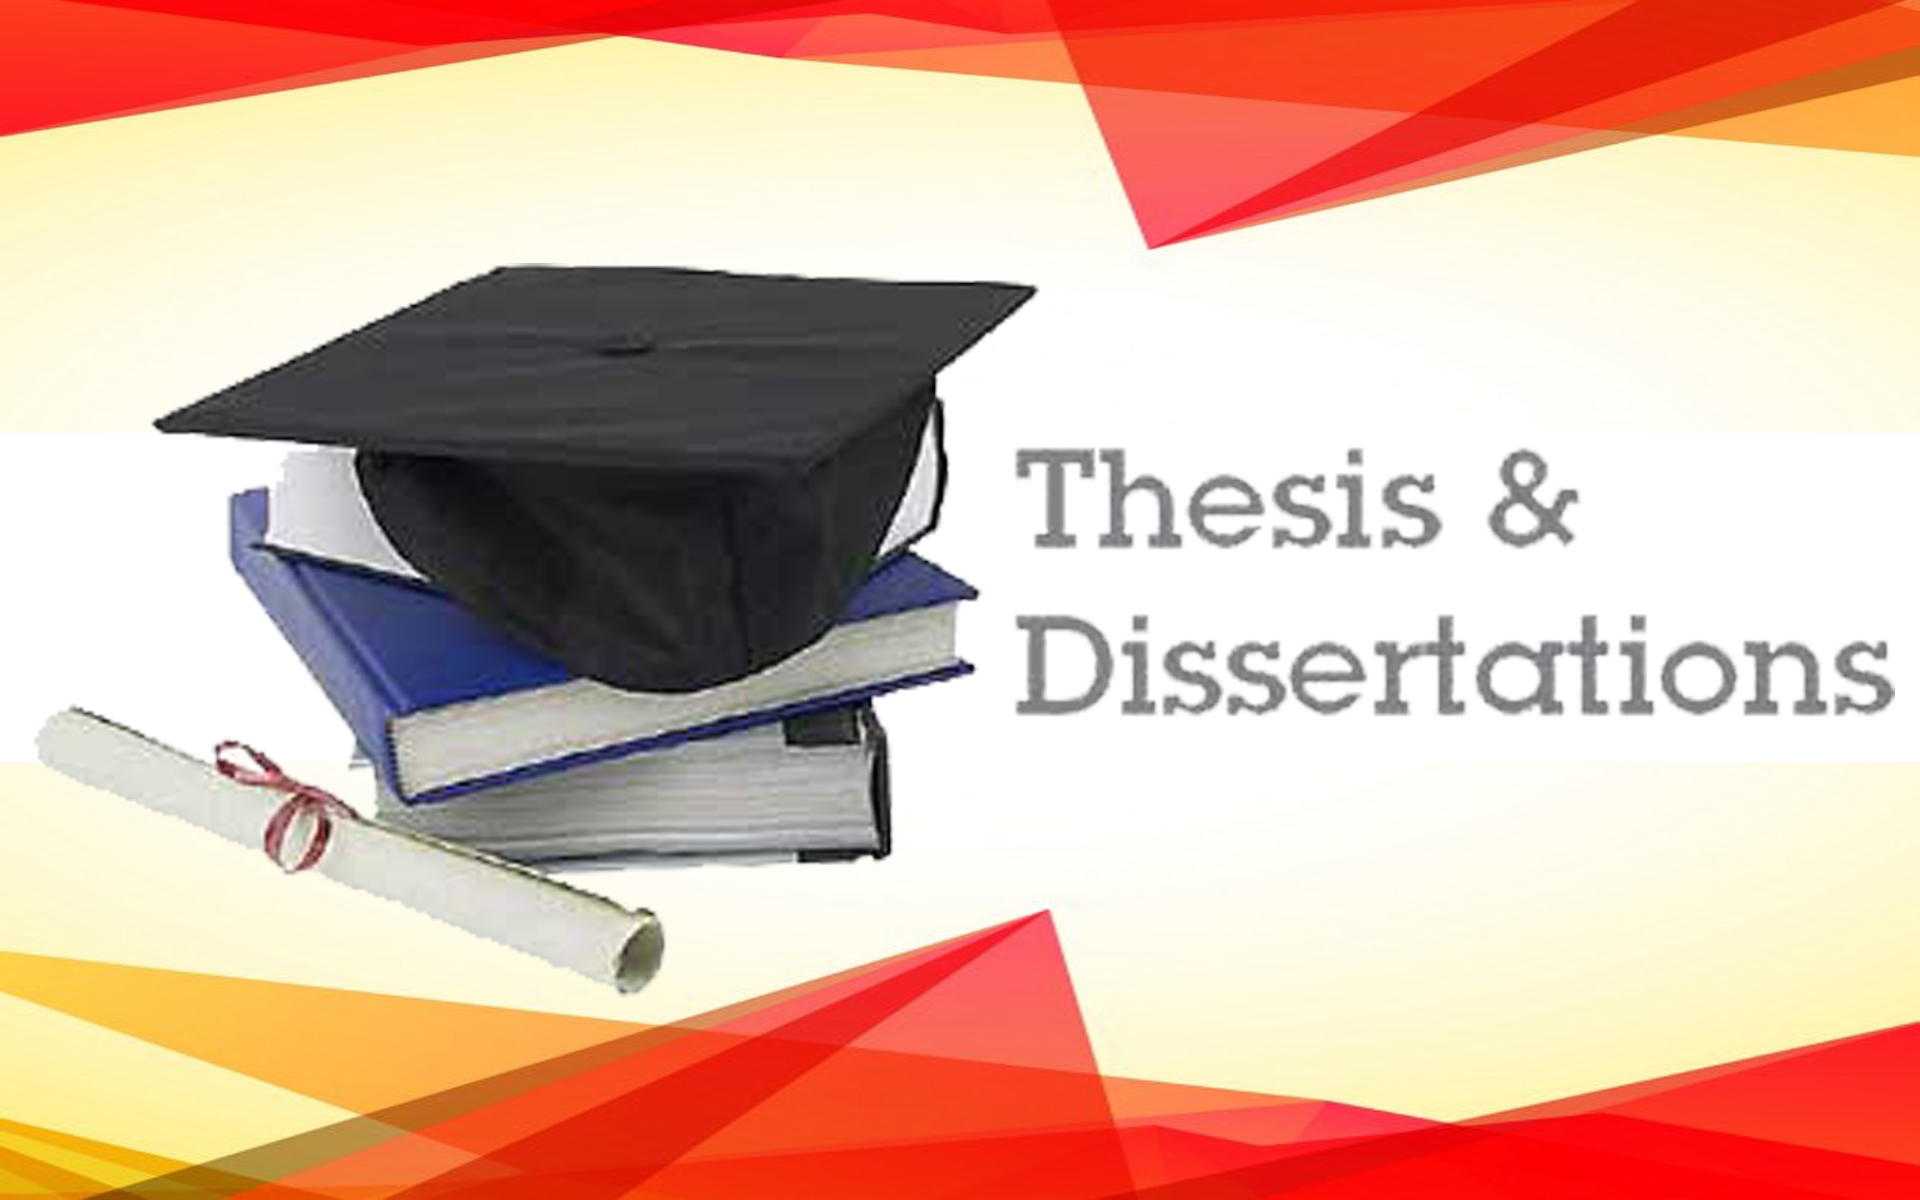 proquest dissertations and theses (pqdt)